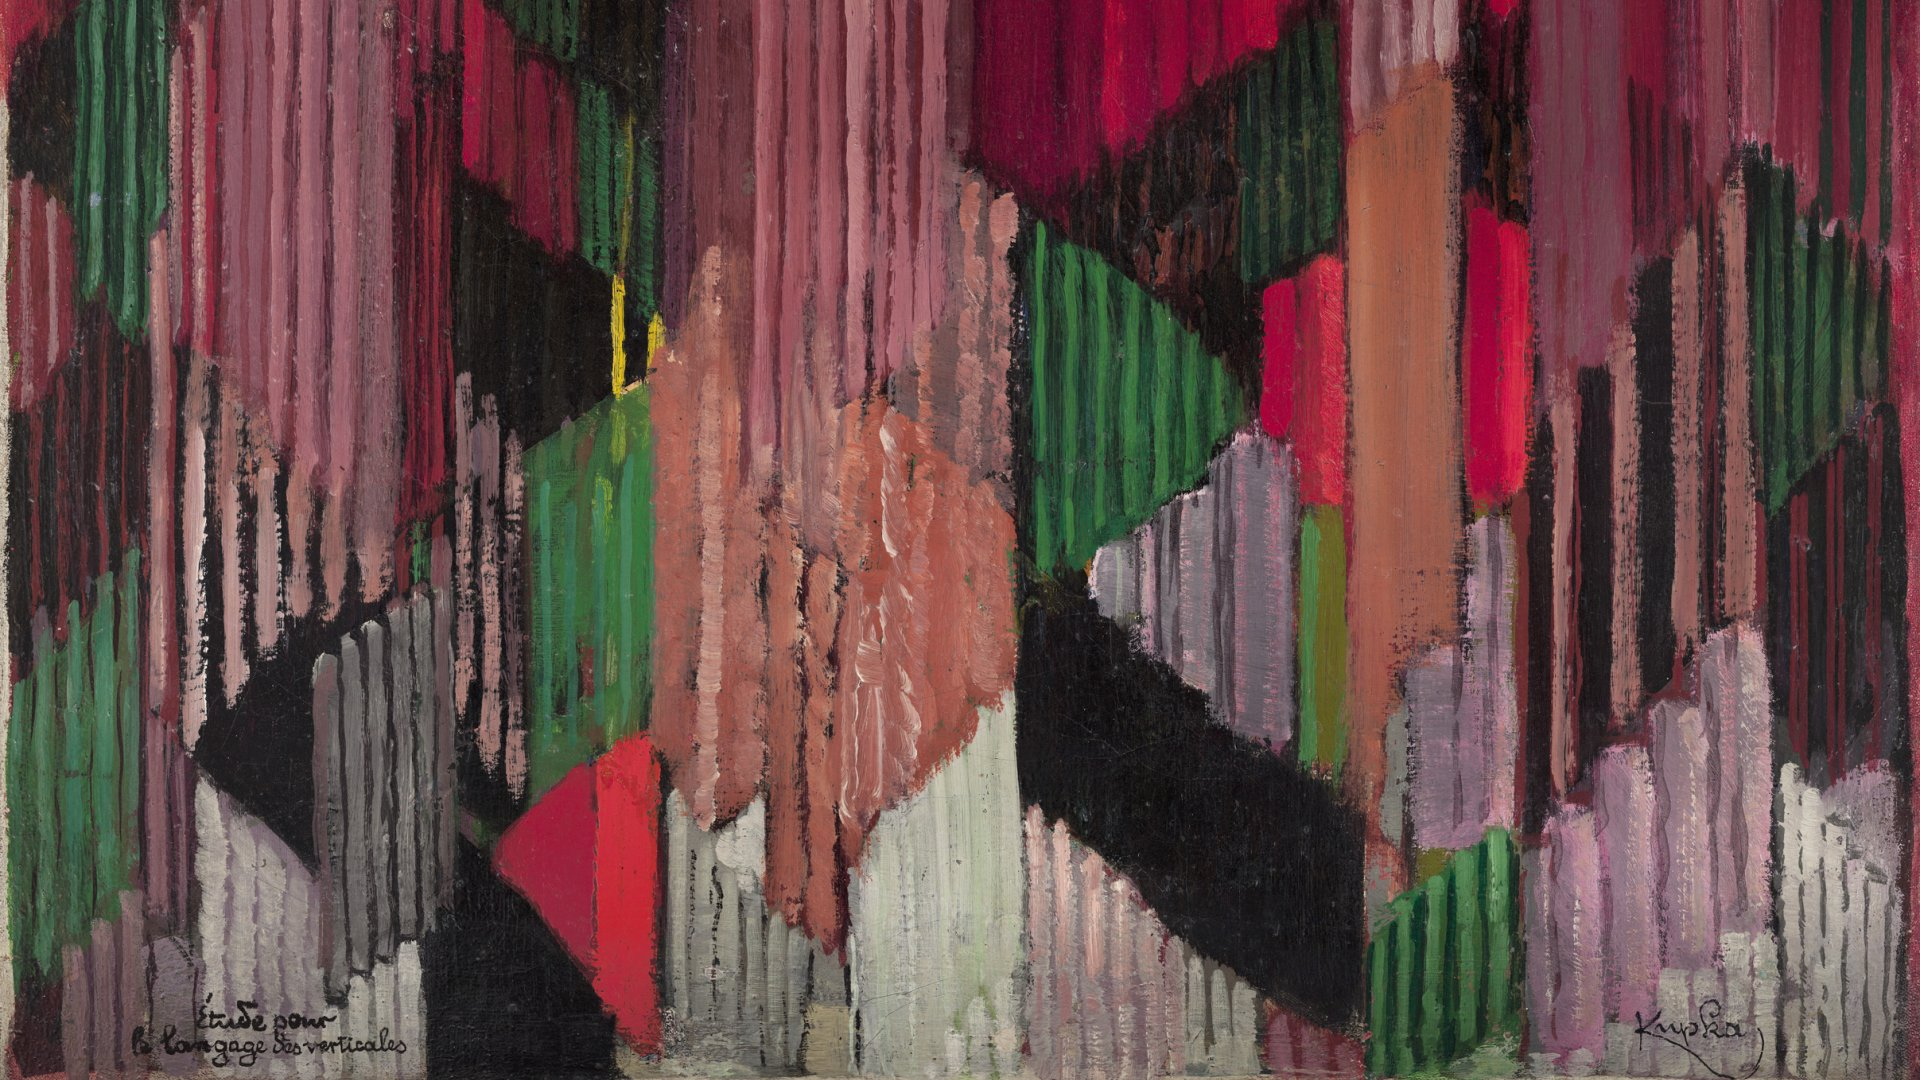 Study Language Of Verticals - Kupka Frantiek